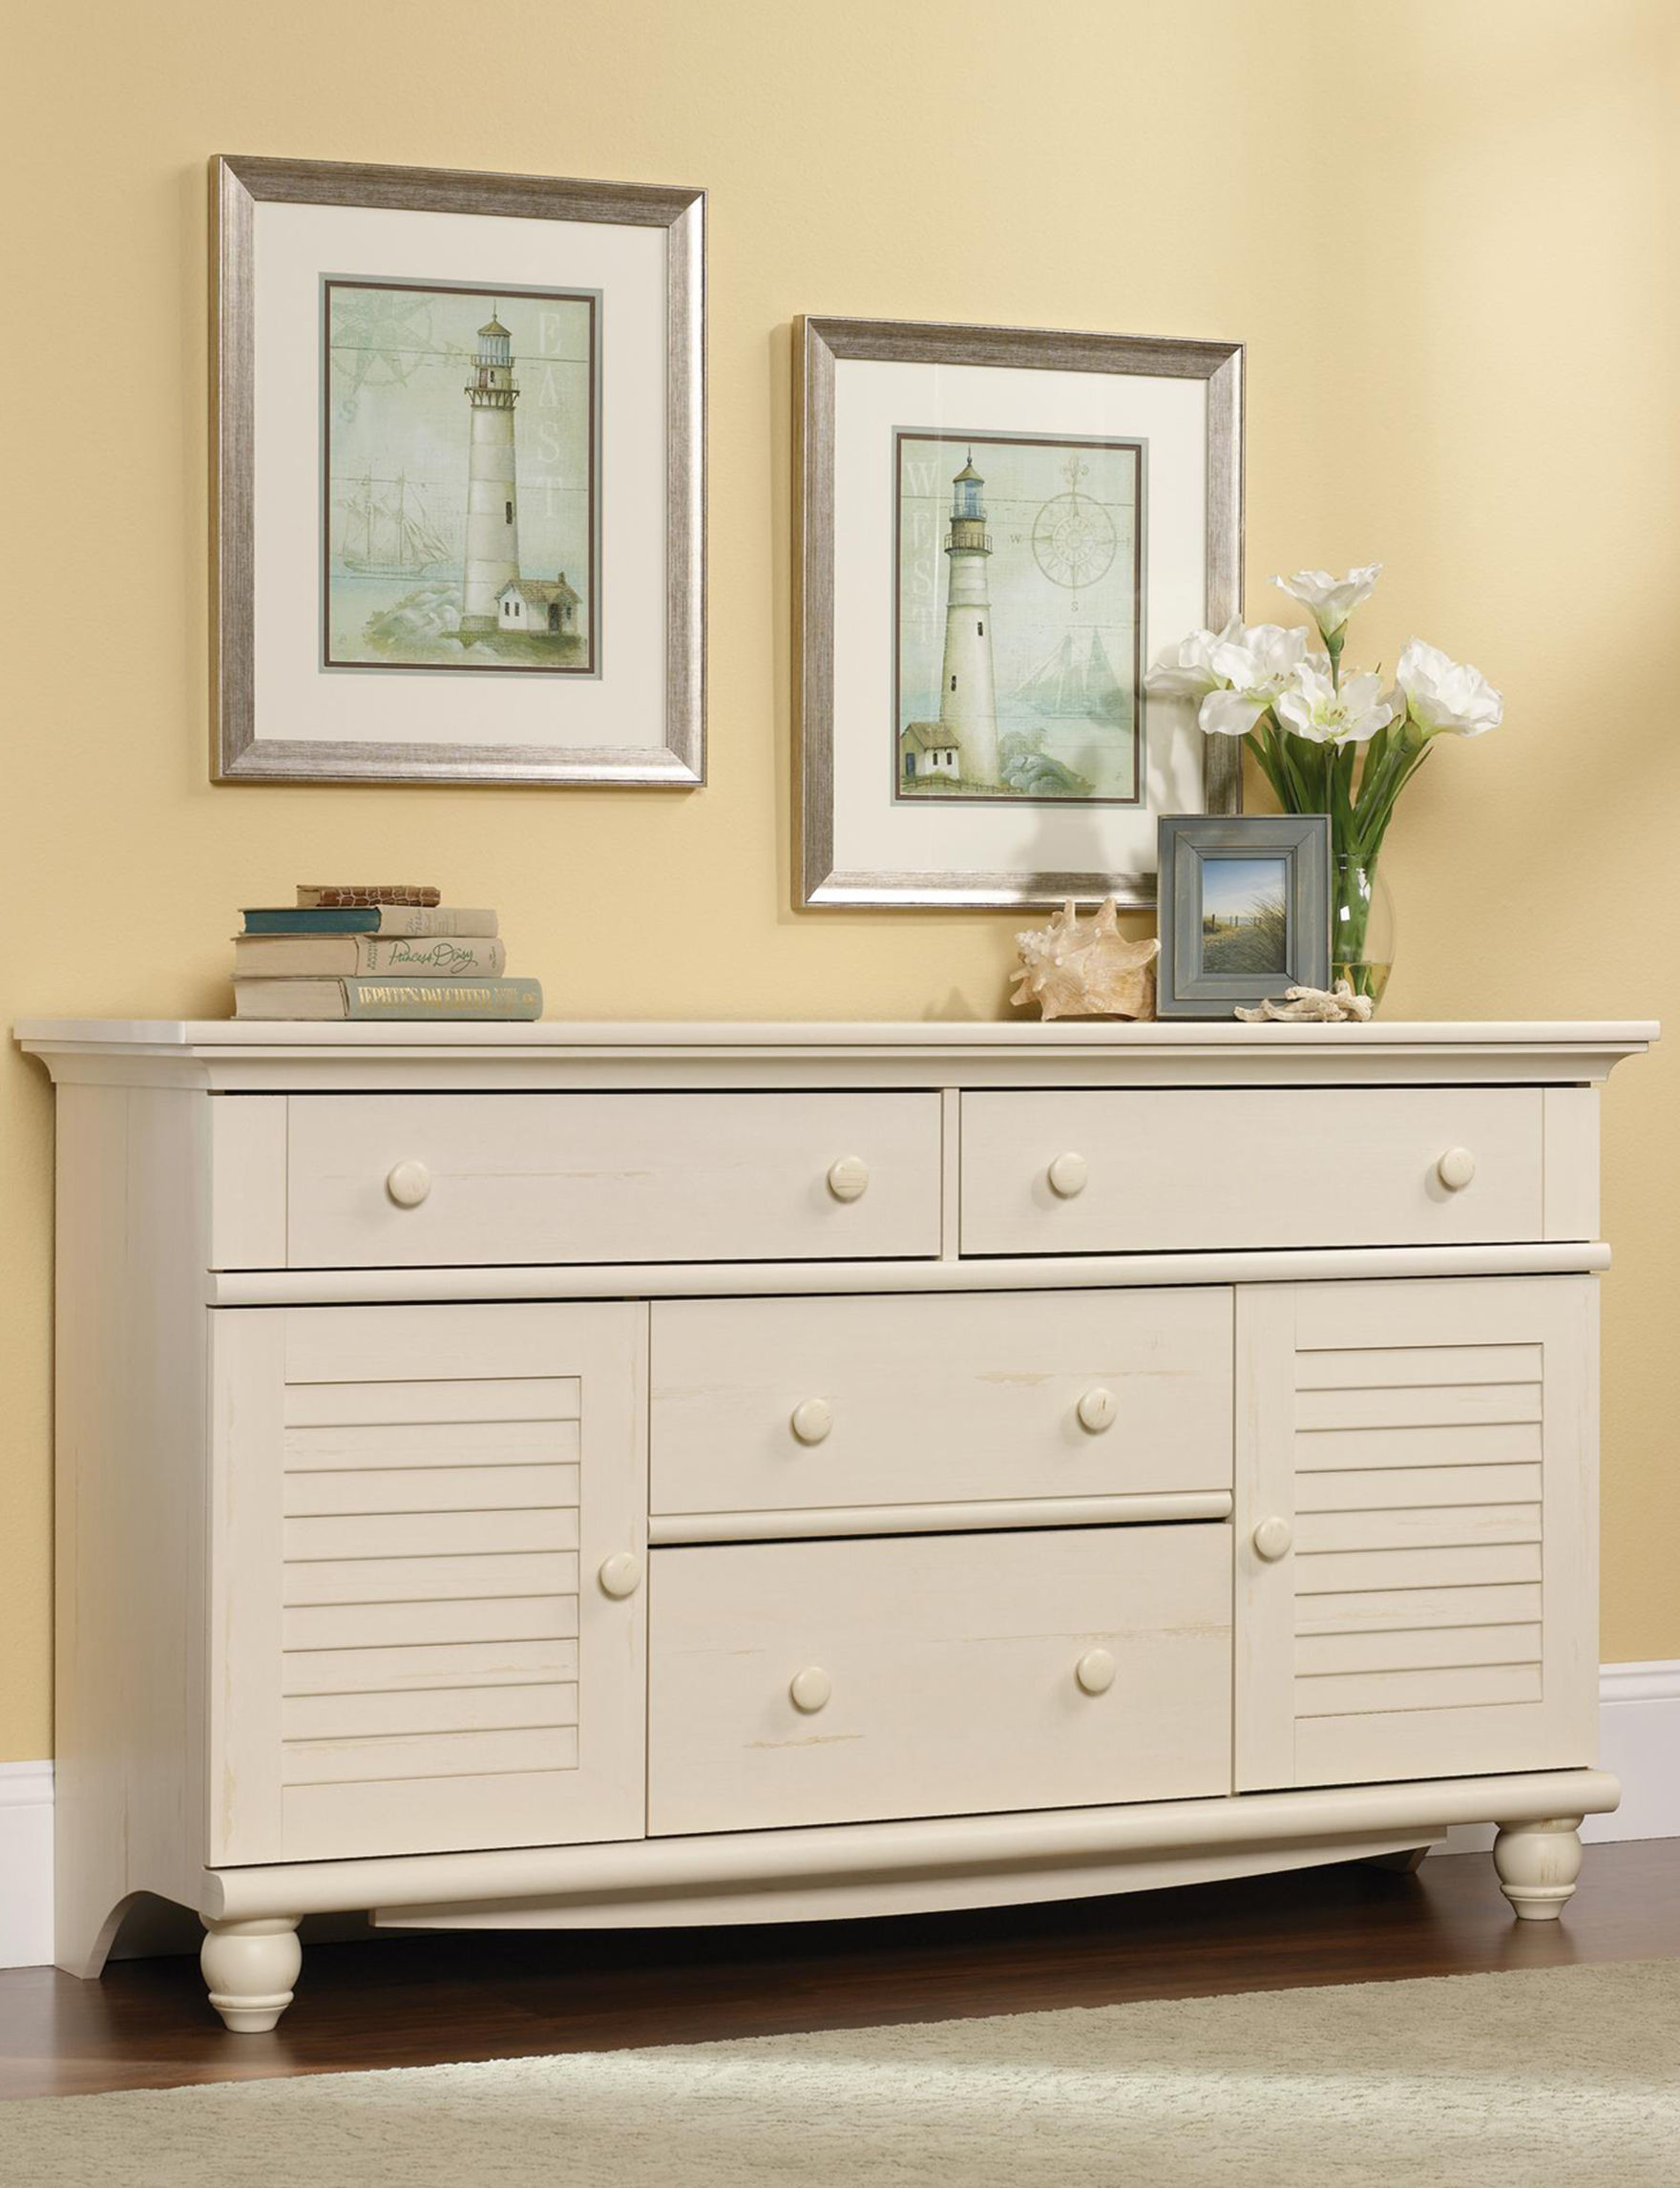 Sauder White Dressers & Chests Bedroom Furniture